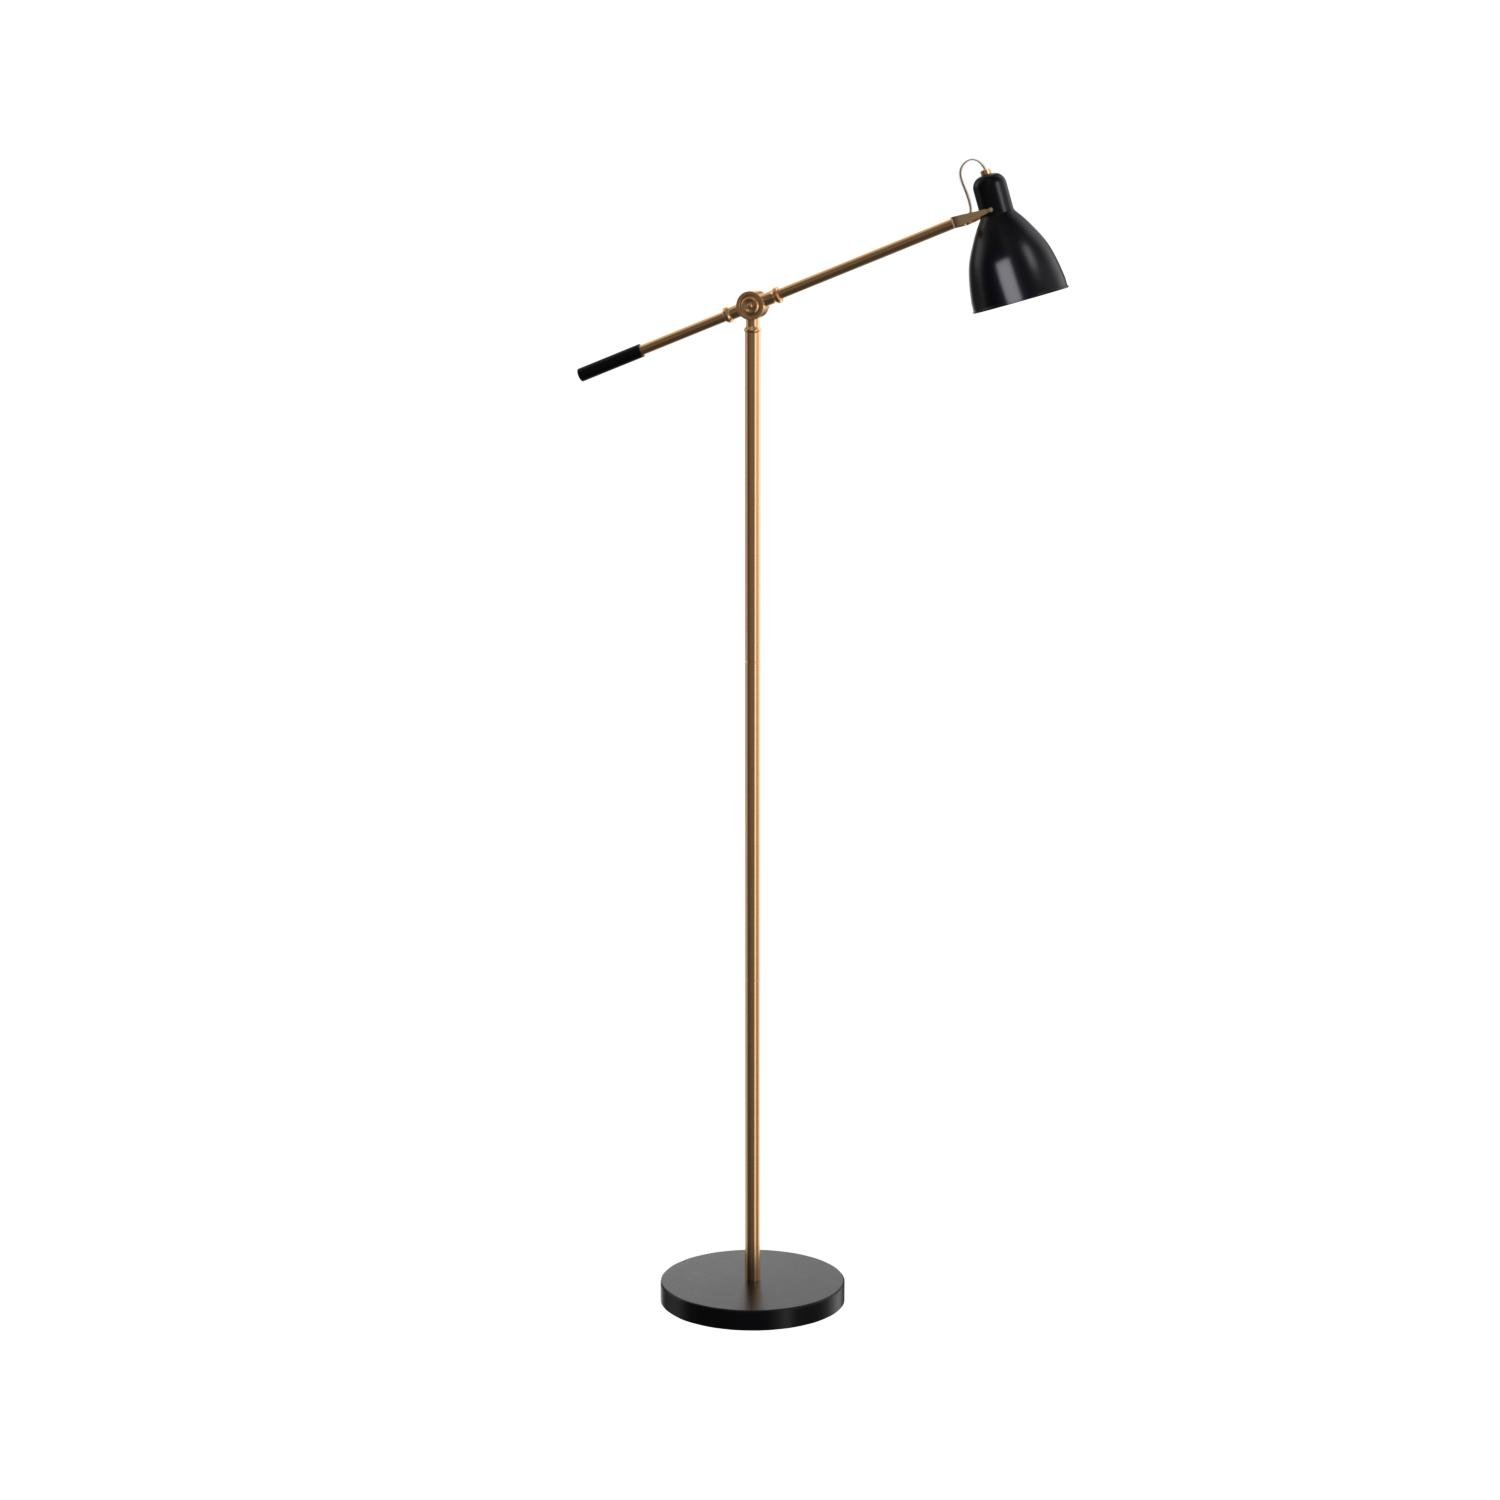 Rivet Caden Adjustable Task Floor Lamp with LED Bulb, 60''H, Black and Brass by Rivet (Image #7)